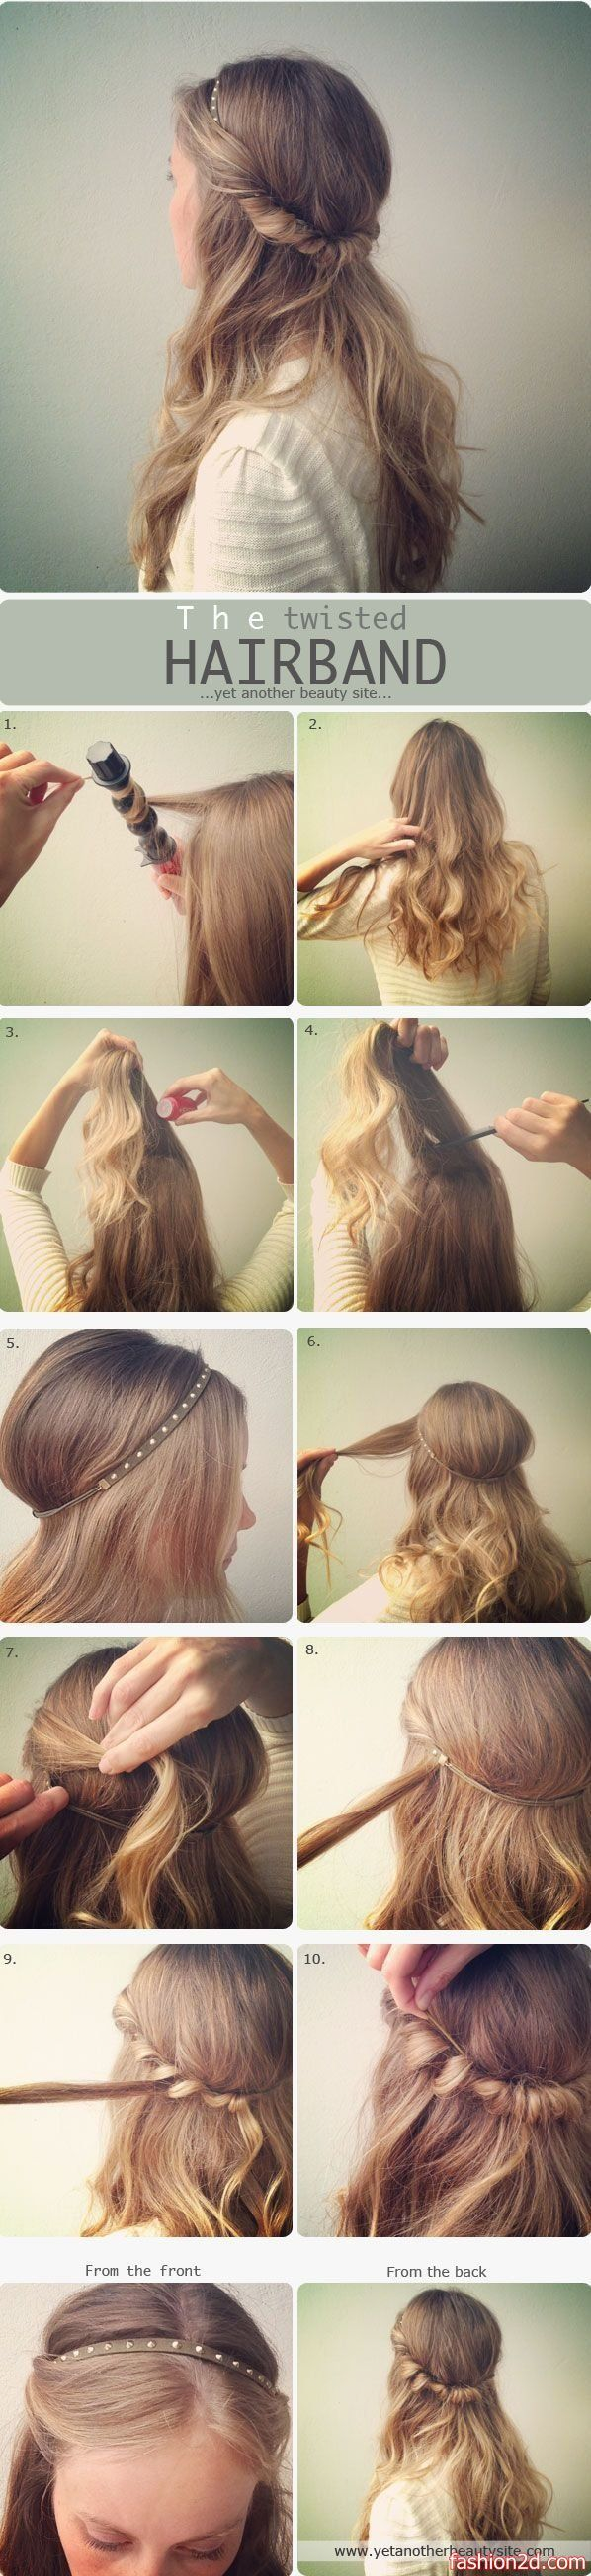 keywords:half up bisected bottomward hairstyles footfall by step,half up bisected bottomward hairstyles tutorial,straight up hairstyles 2017,half up bisected bottomward hairstyle footfall by step,how to do a askance bisected updo,half up bisected bottomward hairstyle tutorial,half up bisected bottomward hairstyles 2016,half updo tutorial,half up bisected bottomward hairstyles easy,half beard style. Related